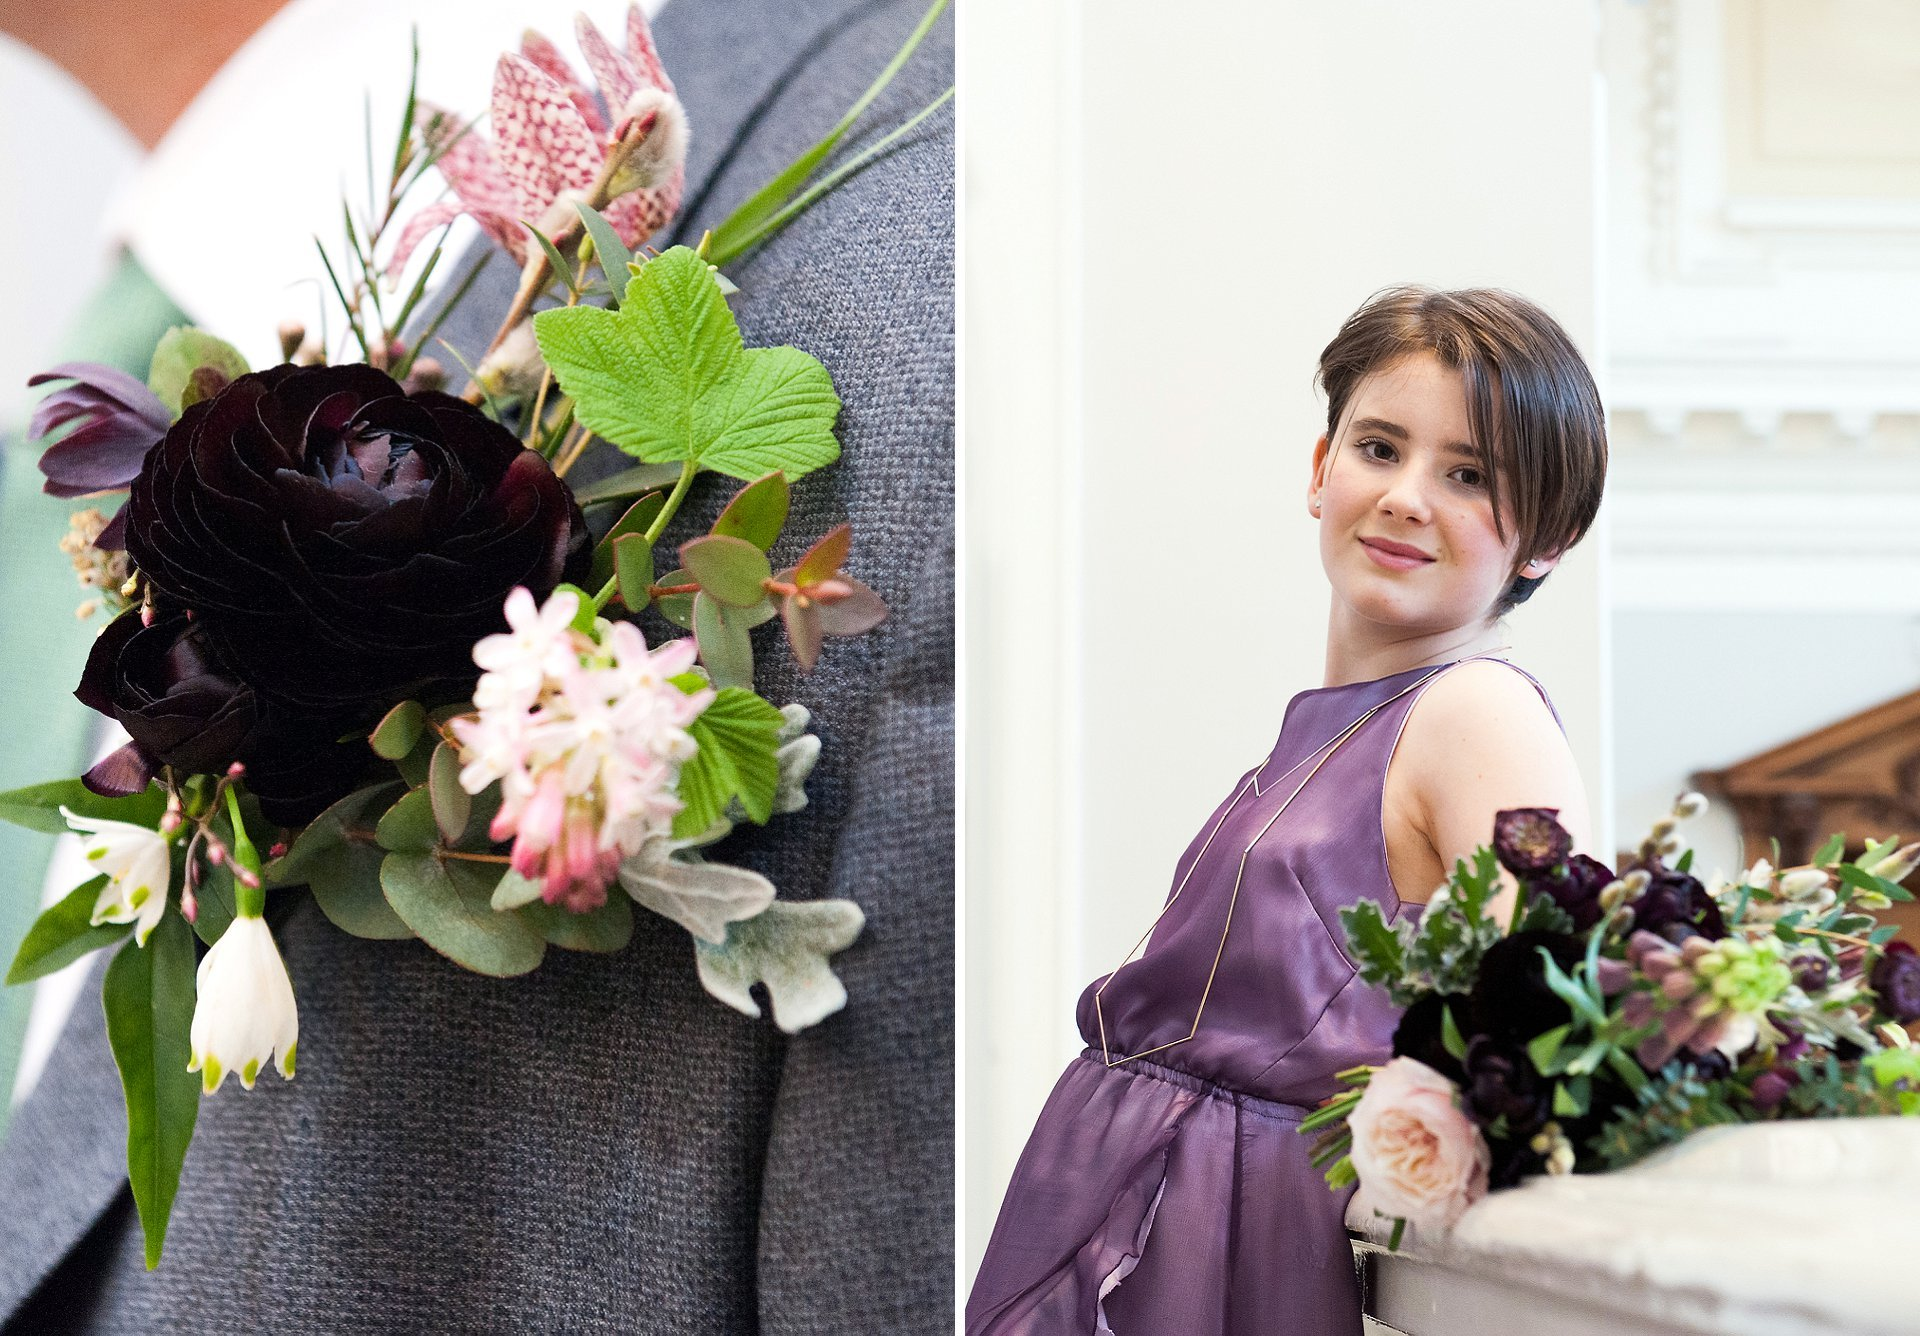 Groom's buttonhole and bridesmaid's wedding bouquet using wild, natural British flowers designed and supplied by Alison Billenness from Blackheath's Bloomologie